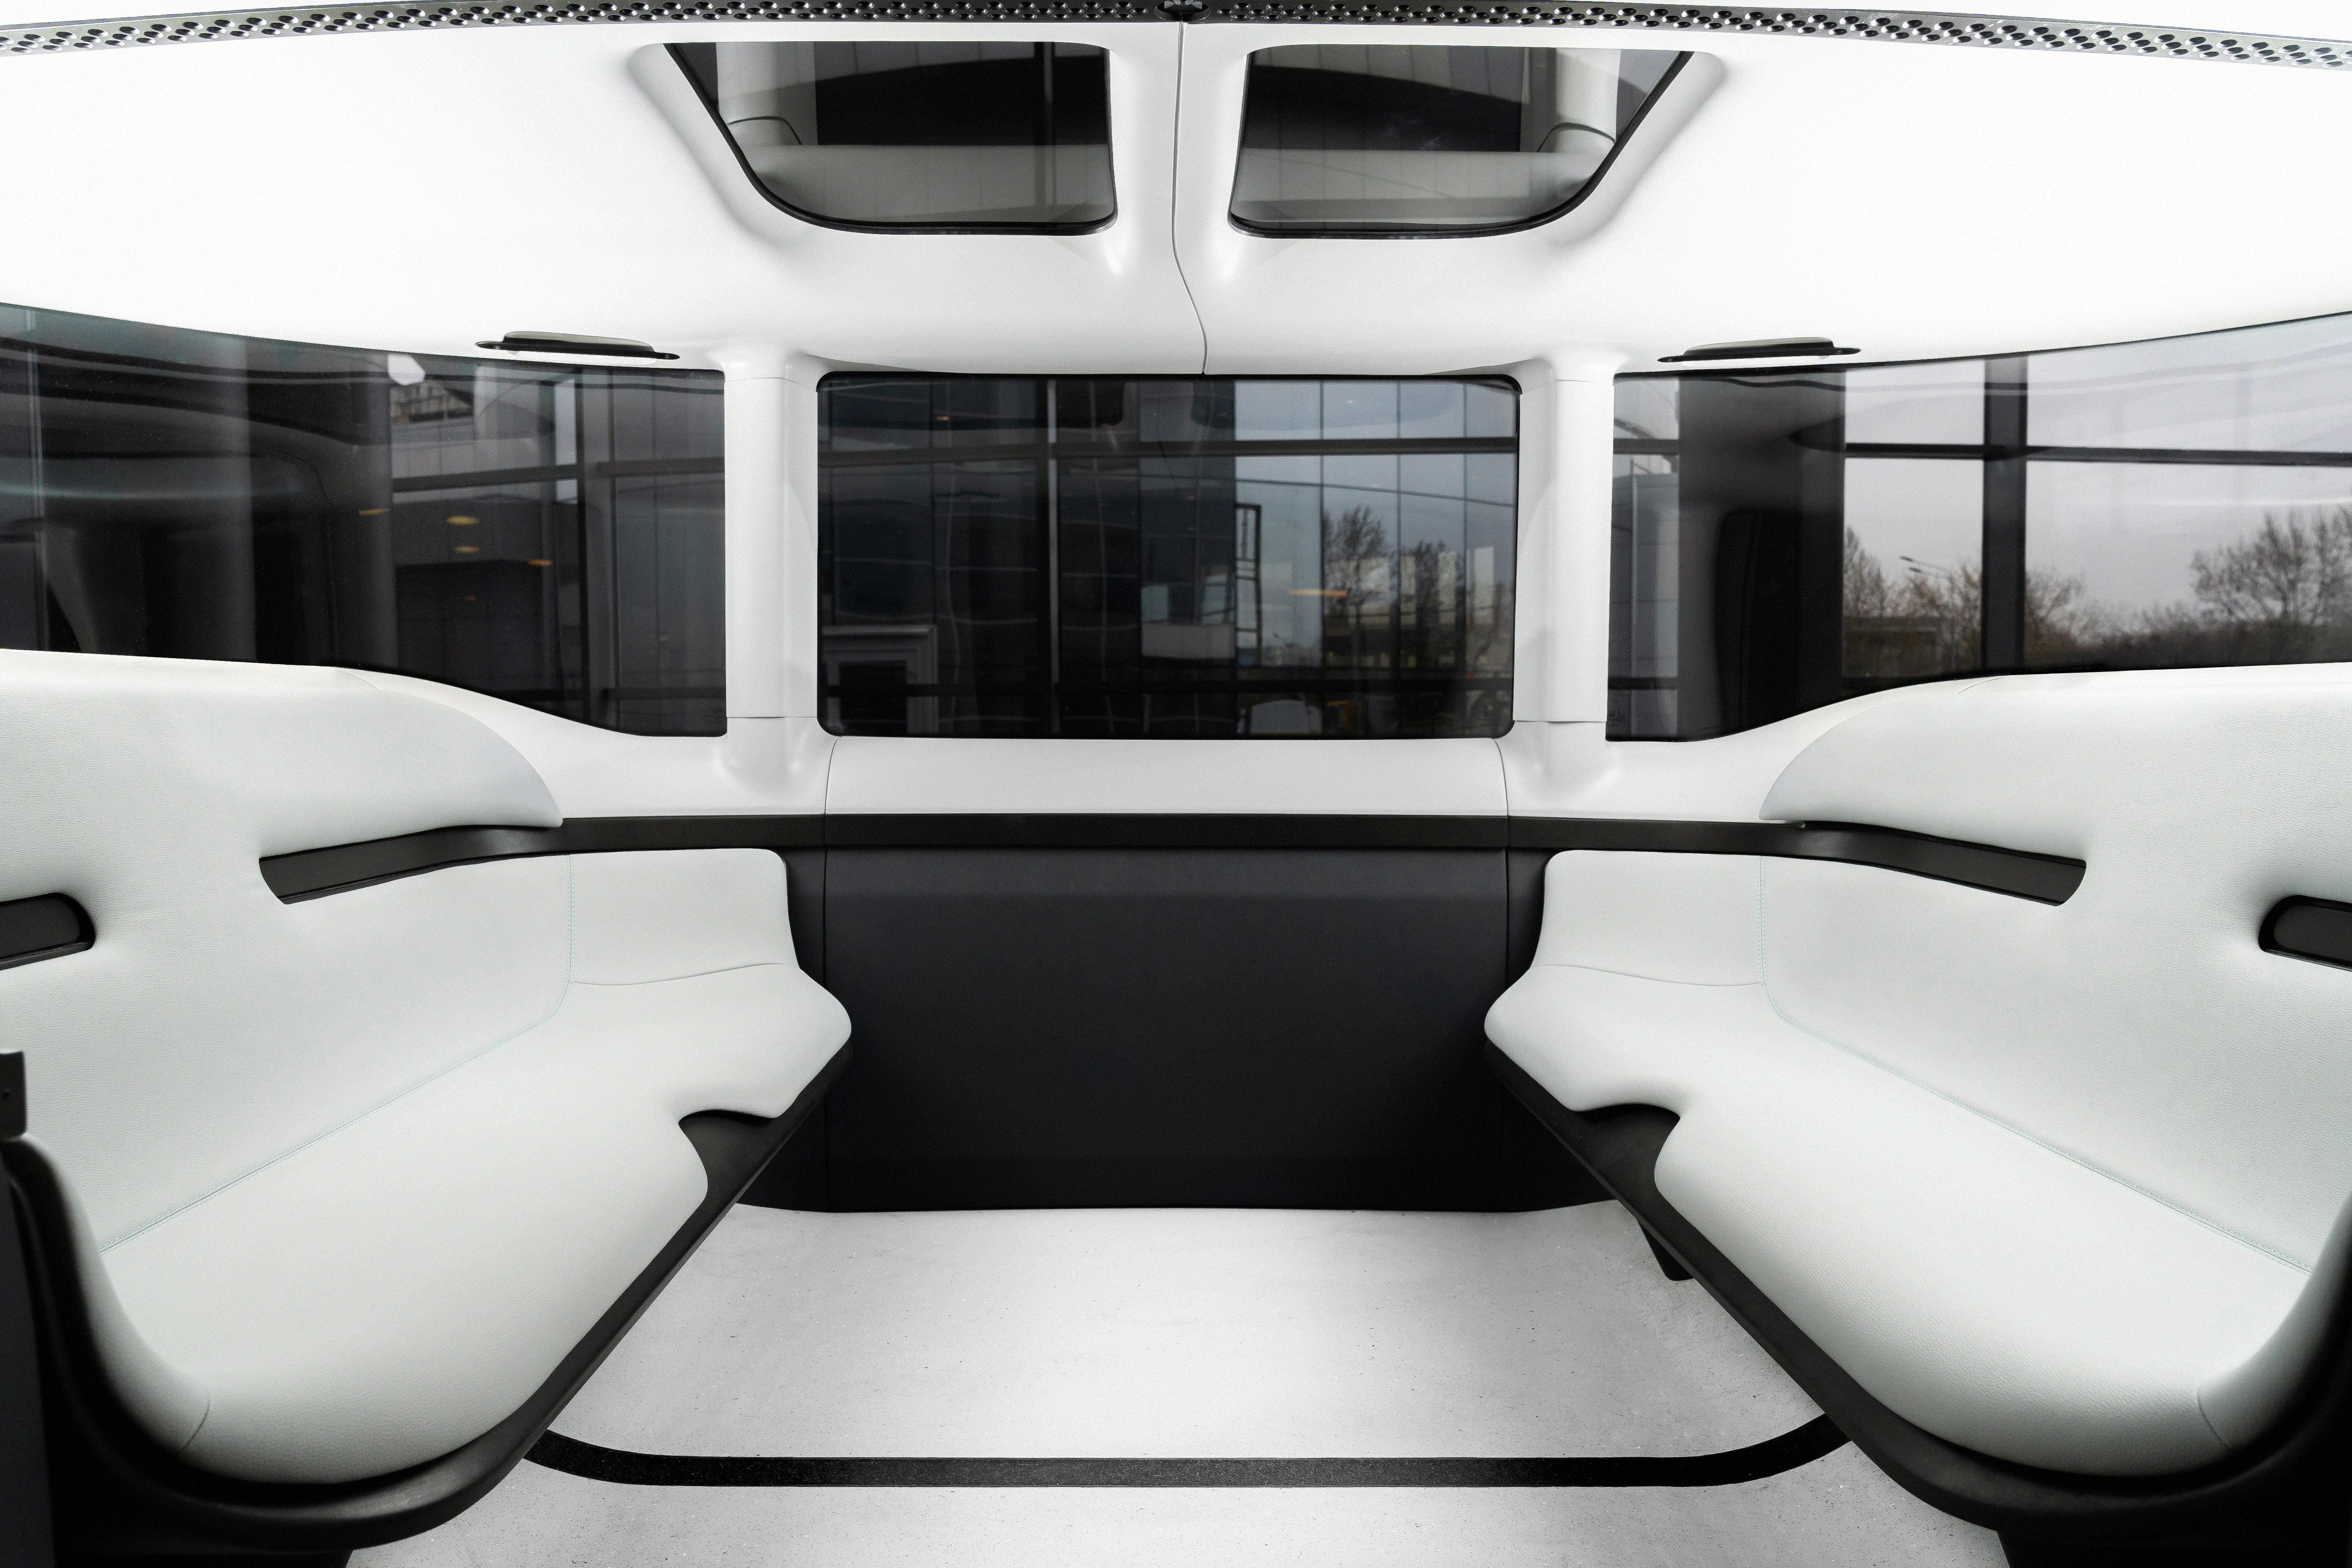 The inerior of FLIP, a fully self-driving vehicle developed by Sberbank, is seen in this handout image released on May 27, 2021. Courtesy of Sberbank/Handout via REUTERS